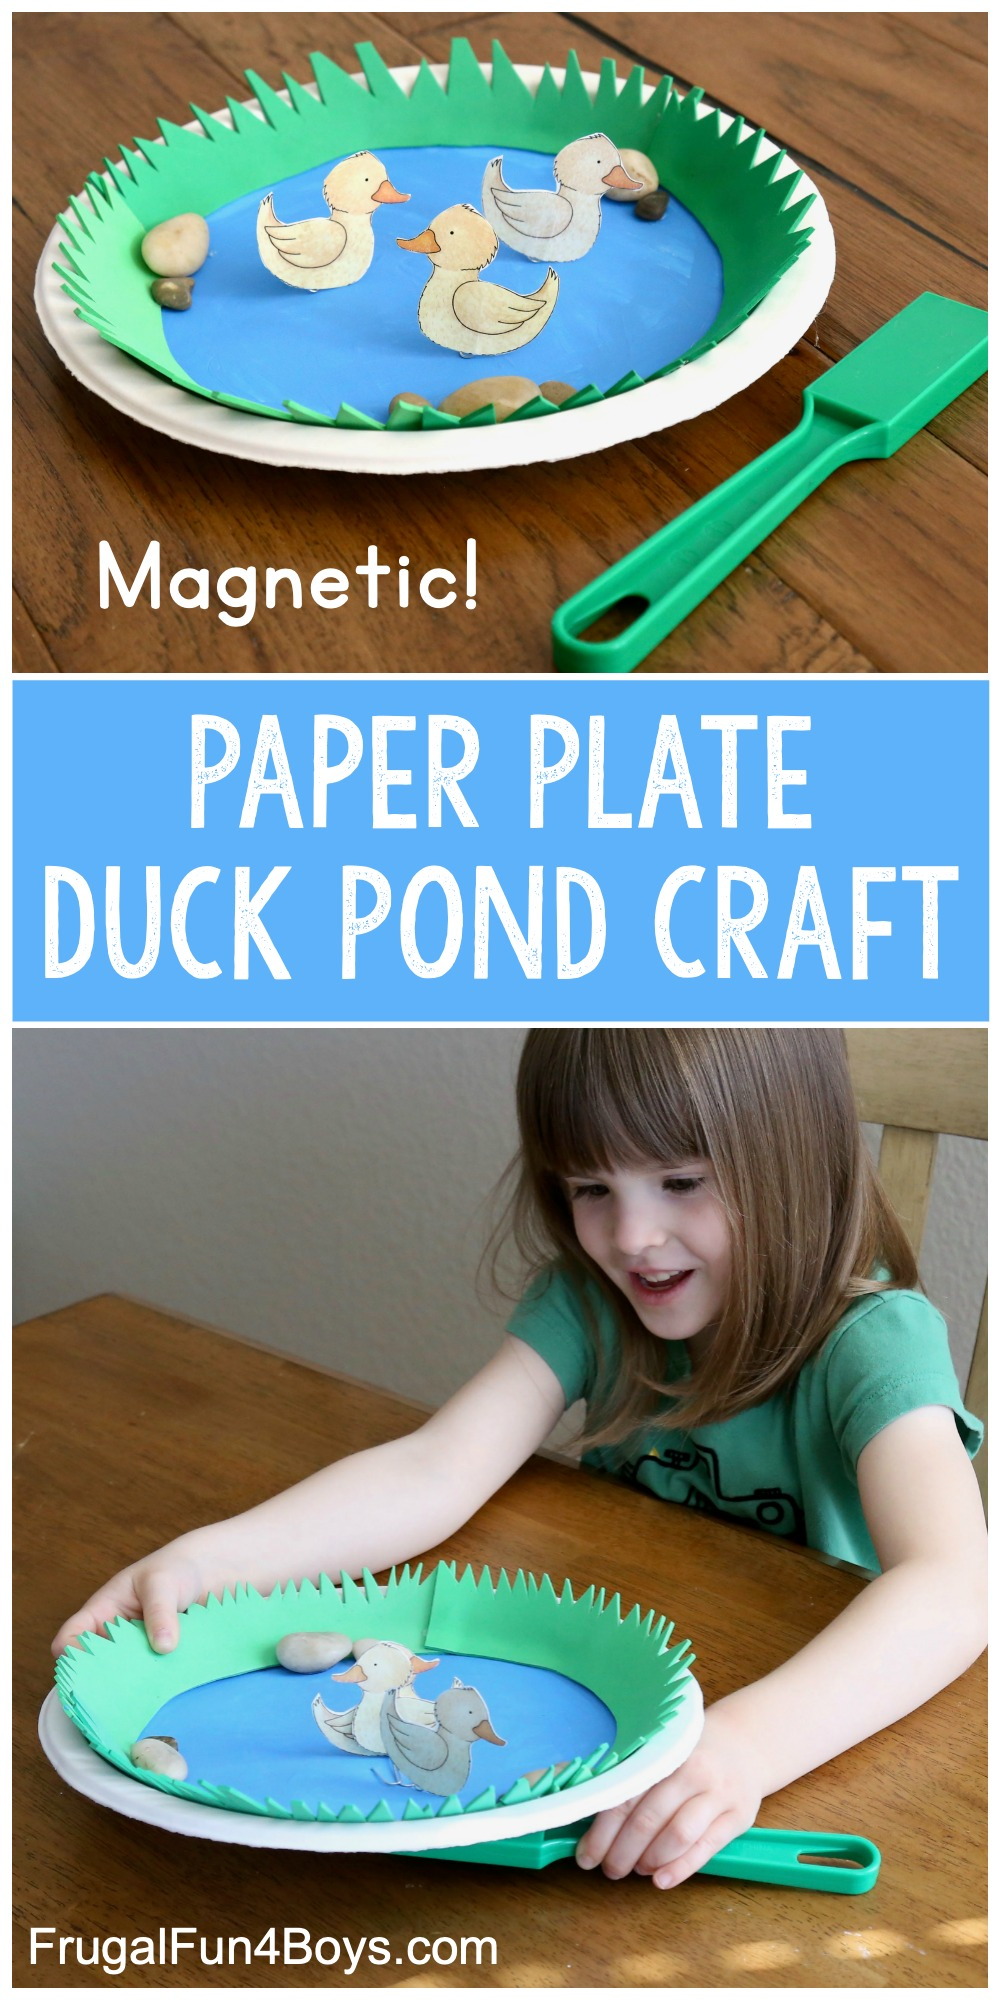 Spring craft for kids! Make a duck pond.